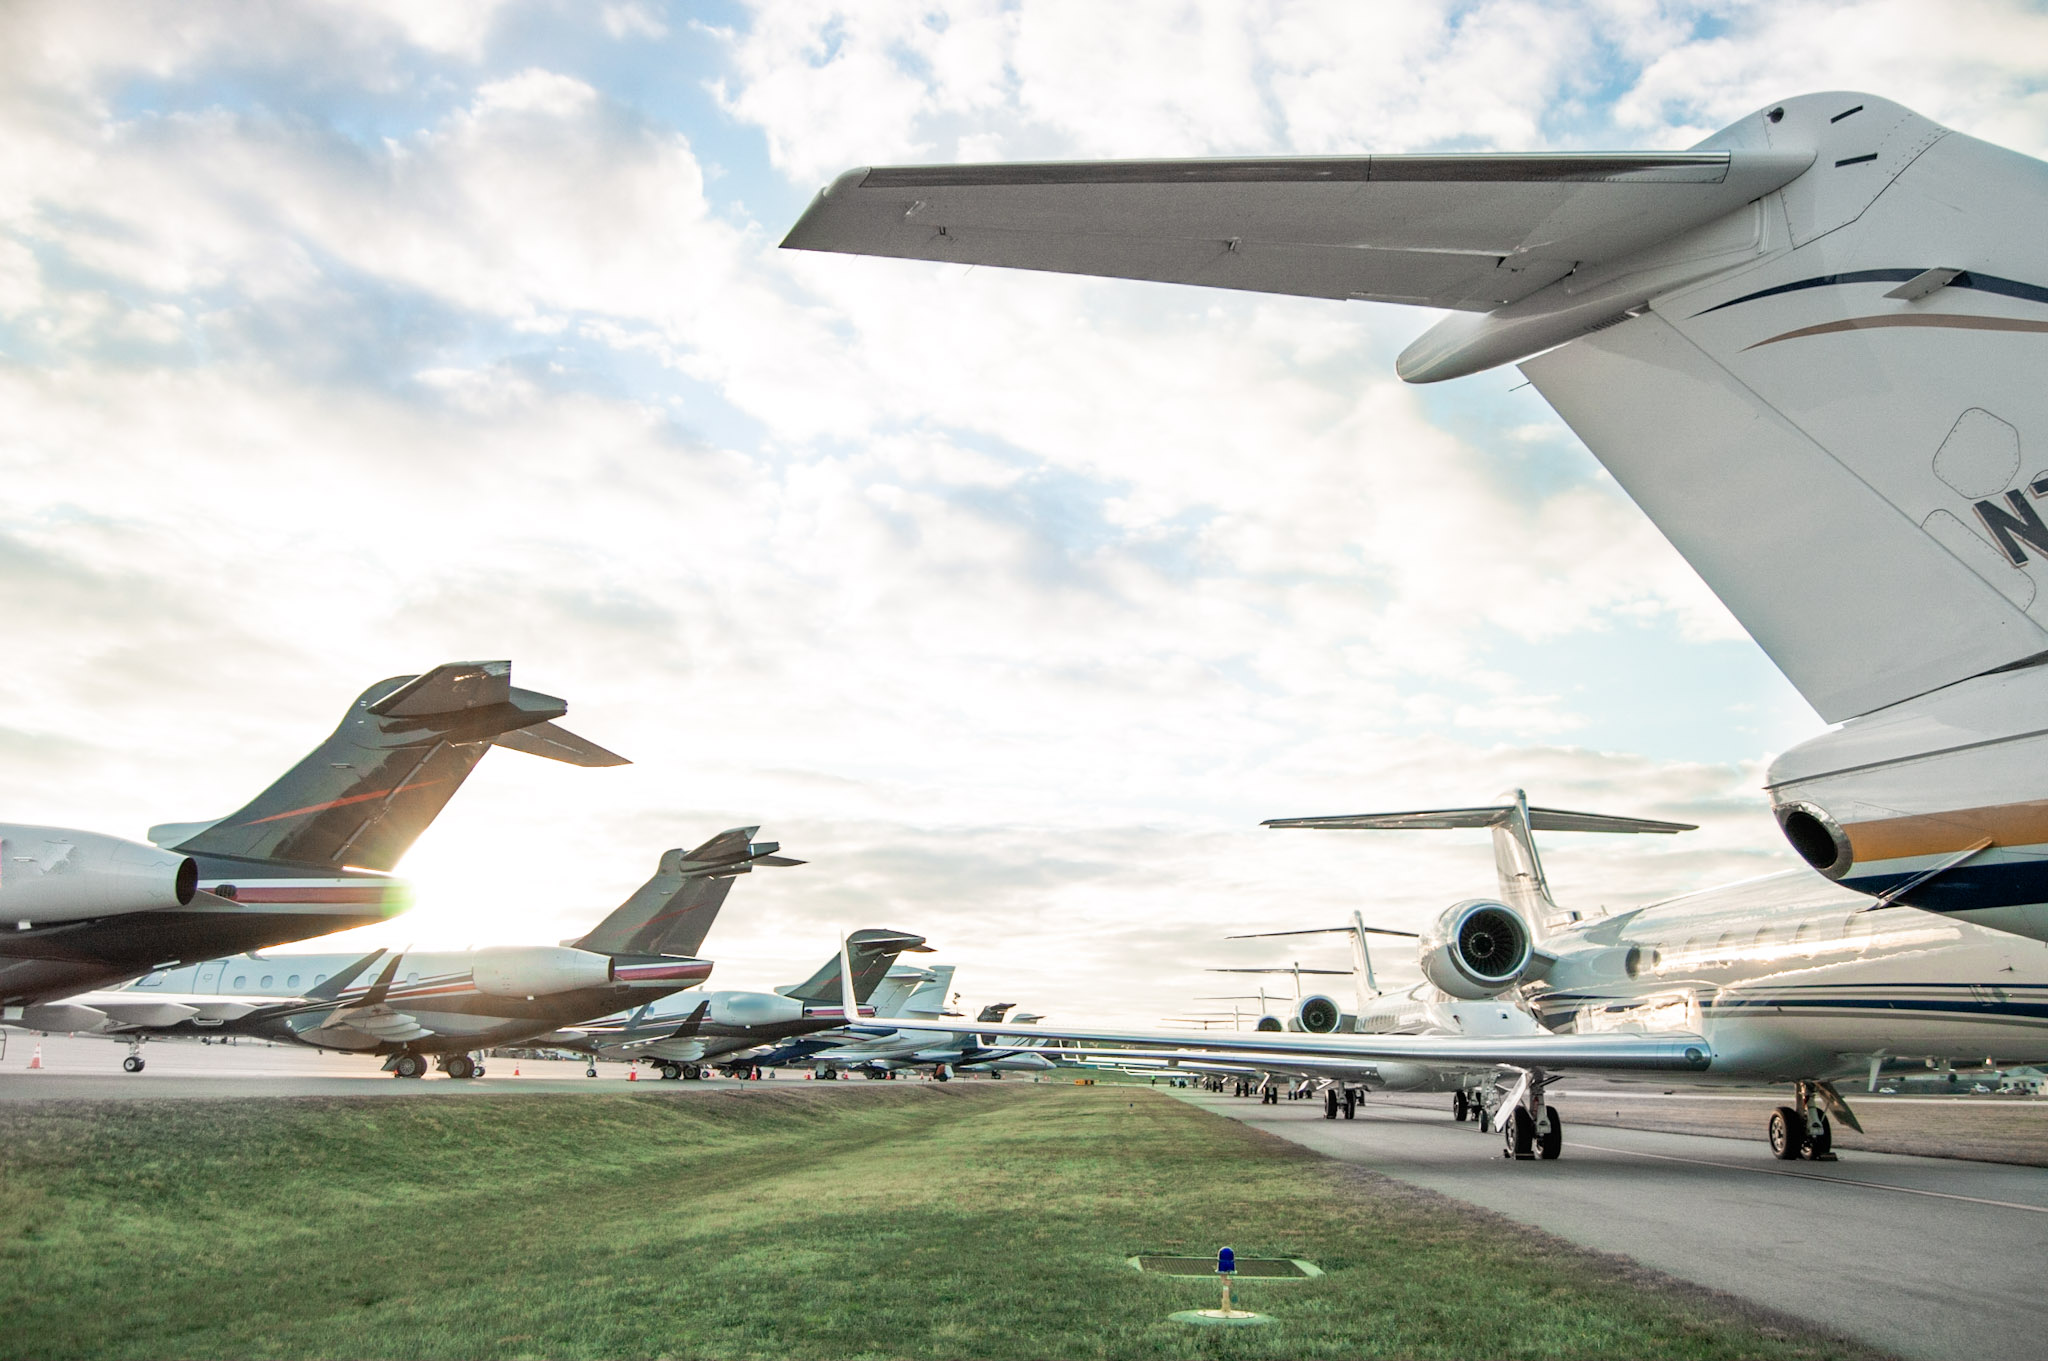 HAWTHORNE GLOBAL AVIATION SERVICES HOSTED OVER 450 AIRCRAFT